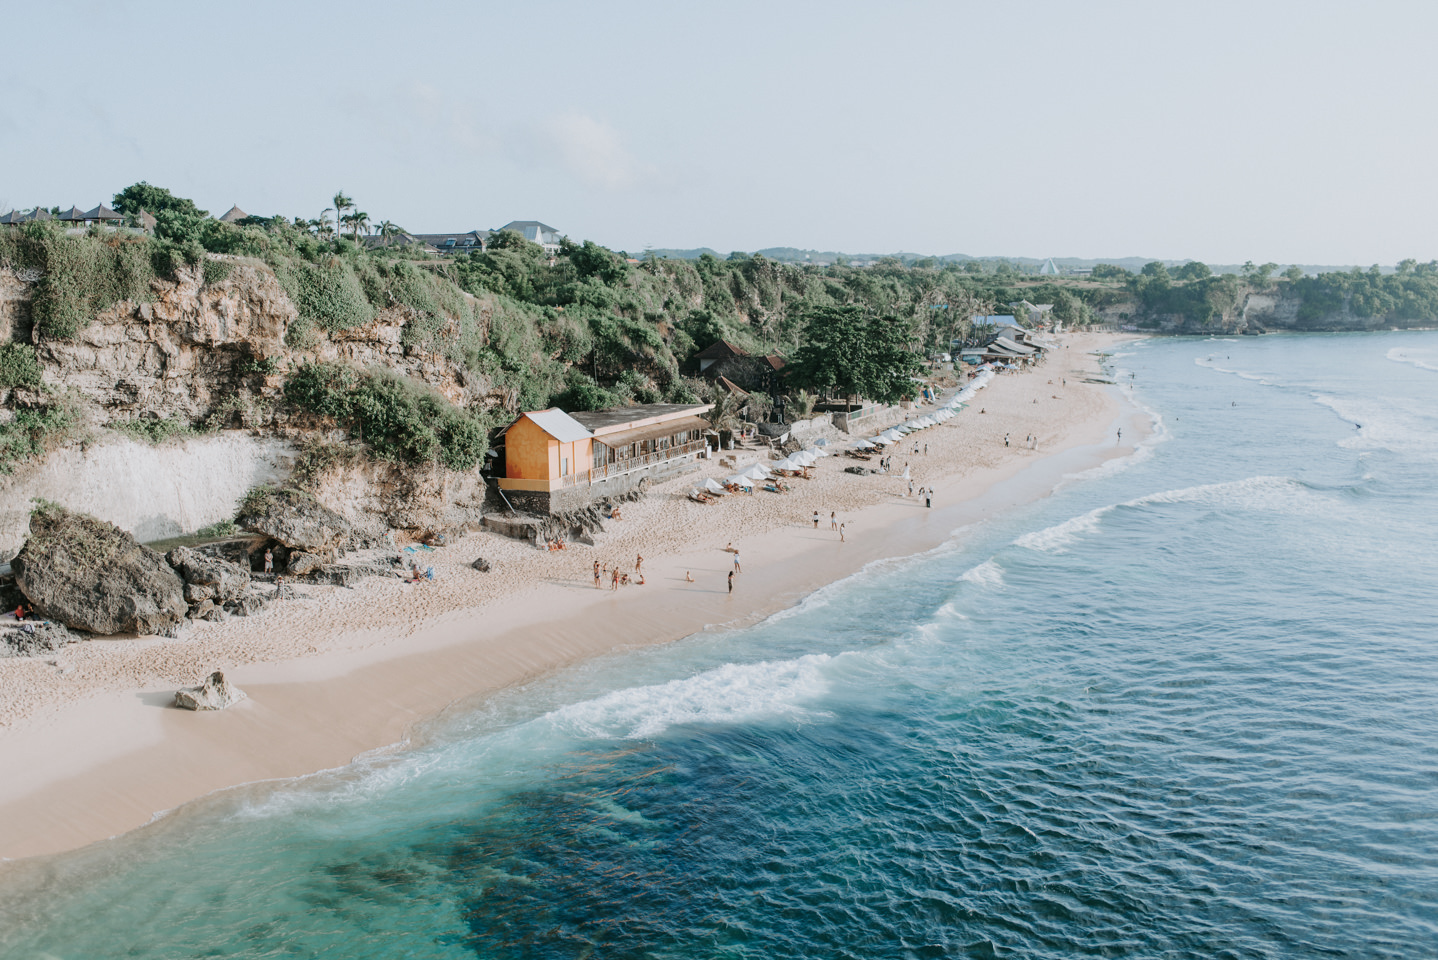 Balangan Beach vibes from above the cliff